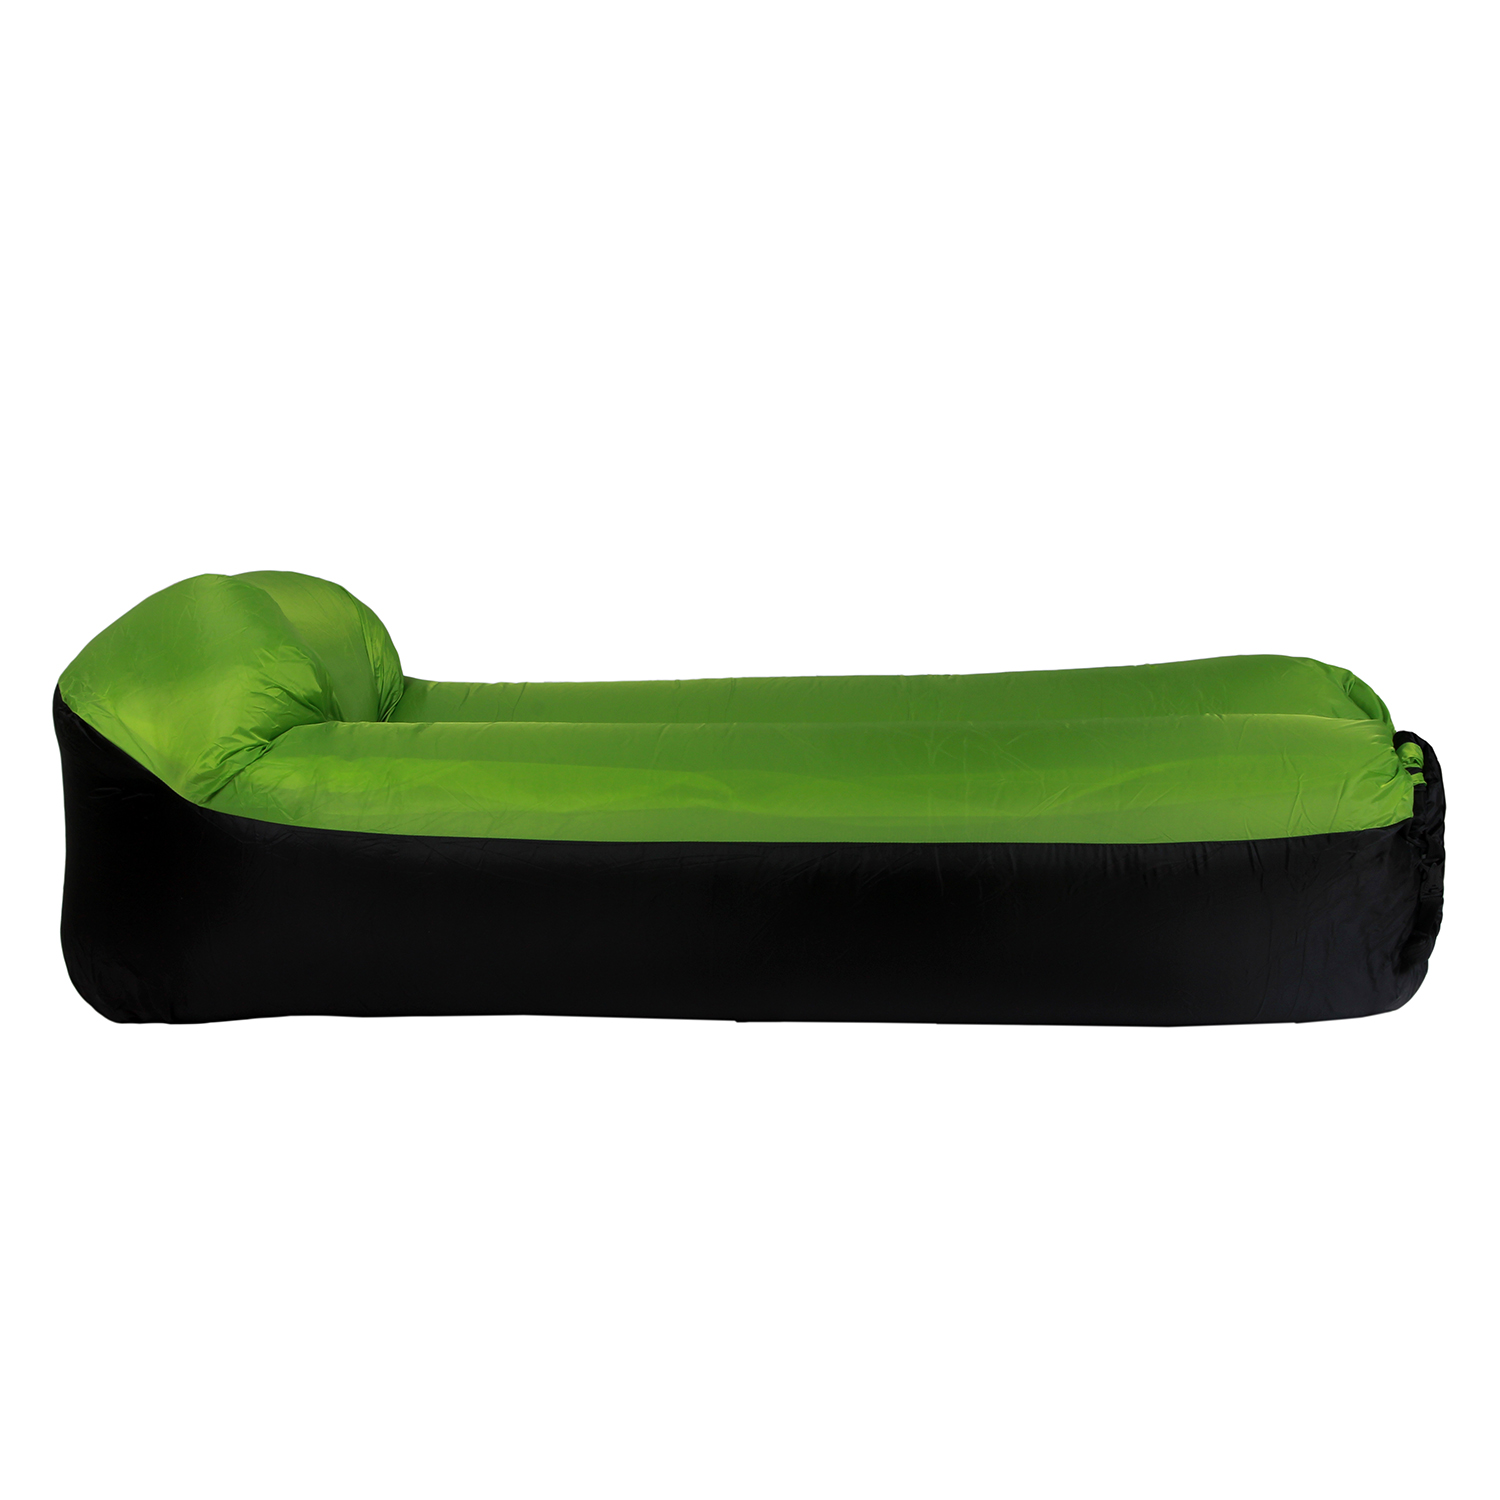 Inflatable Lounger Chair Air Lounger Inflatable Bag Fast Inflate Air Sofa Sleeping Bed For Travelling Camping Park Hiking Pool Camping & Hiking Sports & Entertainment